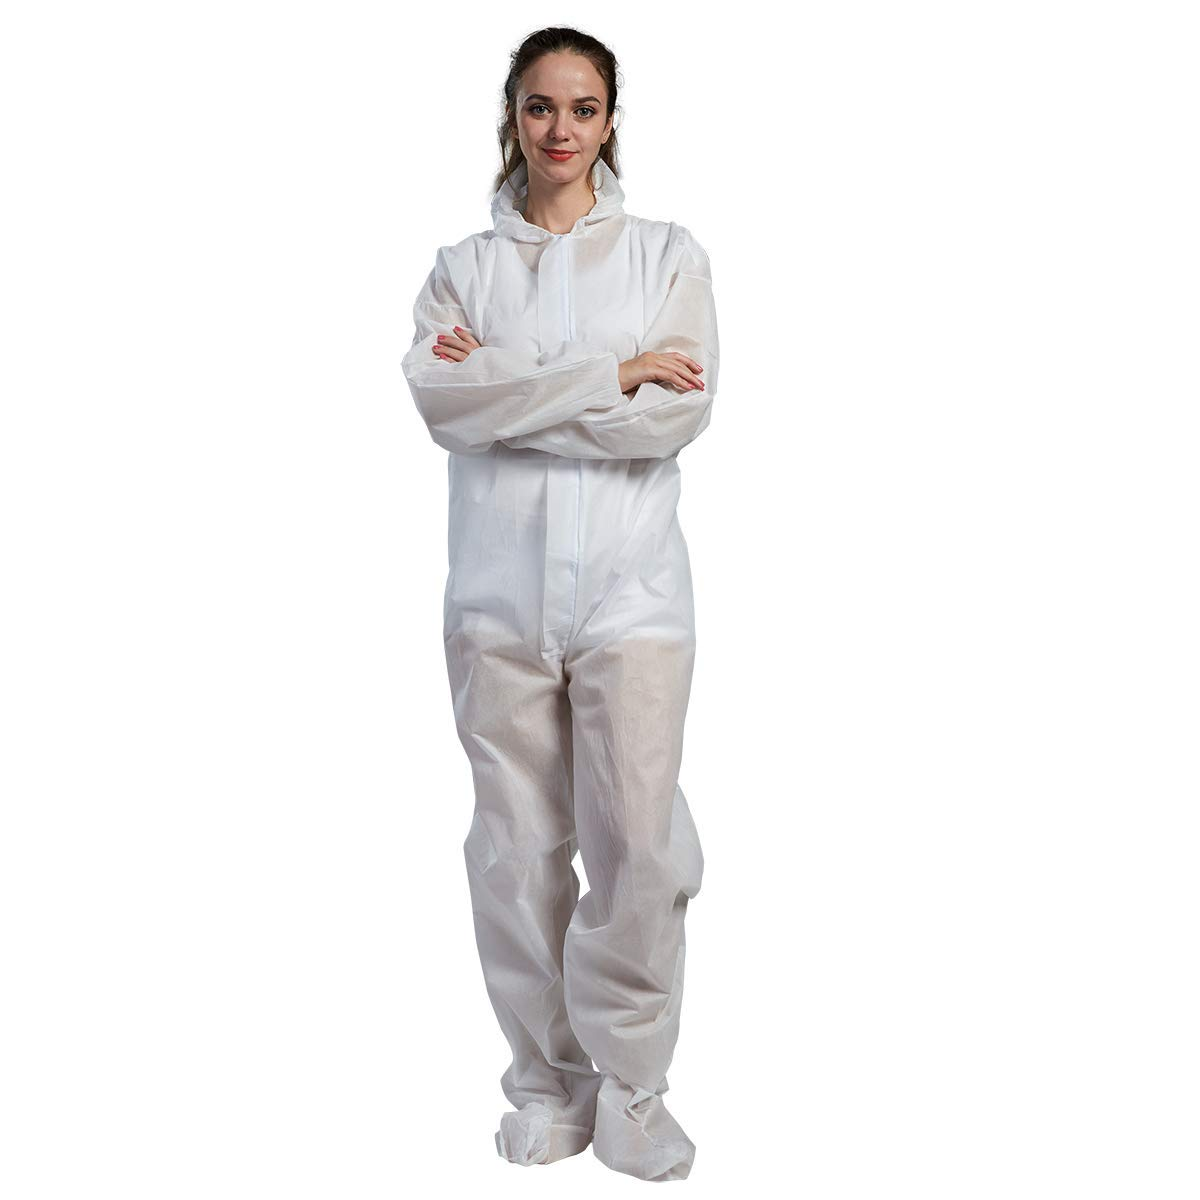 Cityelf Disposable Coveralls with Hood Boot and Elastic Cuff Wrists Overalls Unisex Suit